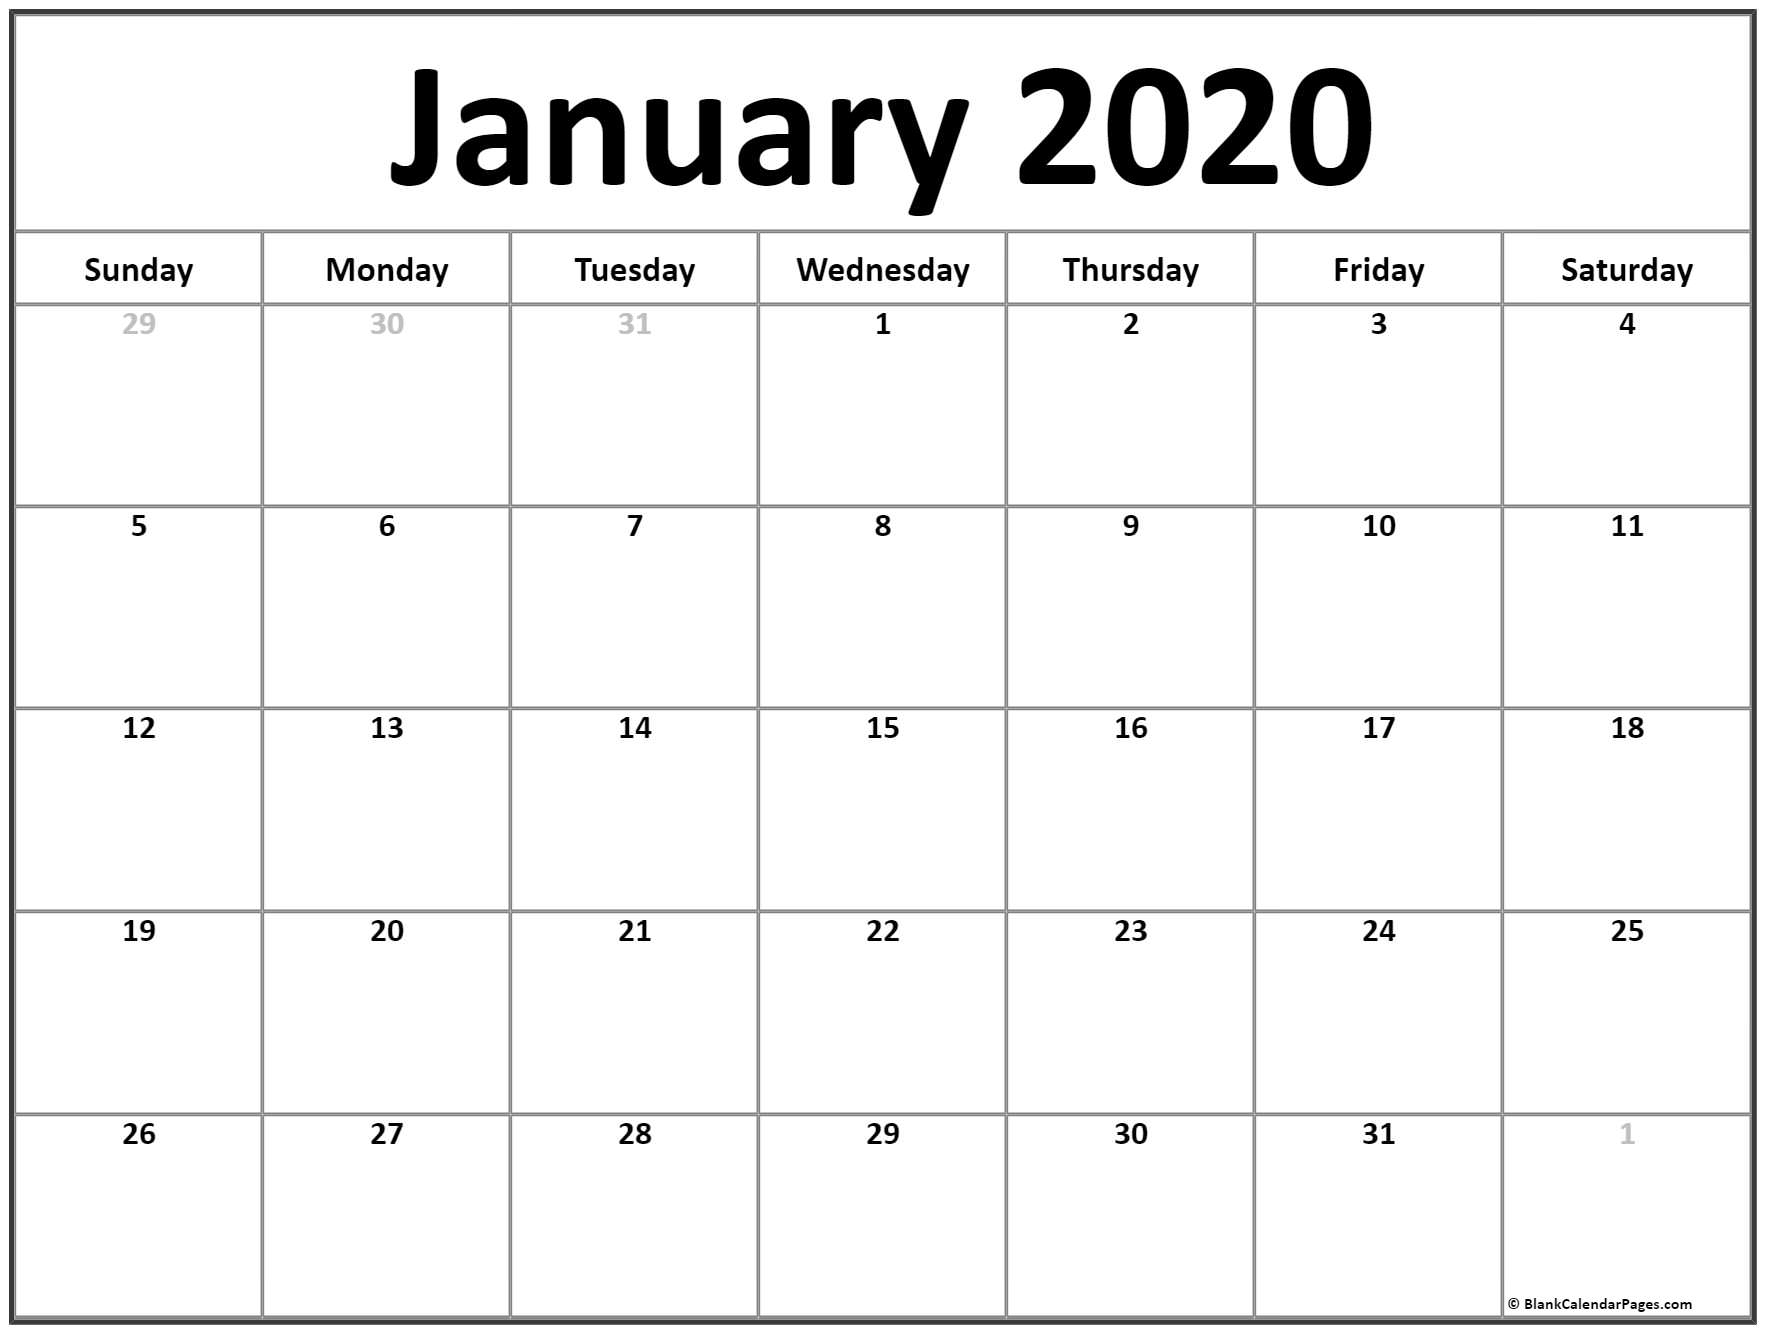 January 2020 Calendar | Free Printable Monthly Calendars with Show Calendar For January 2020